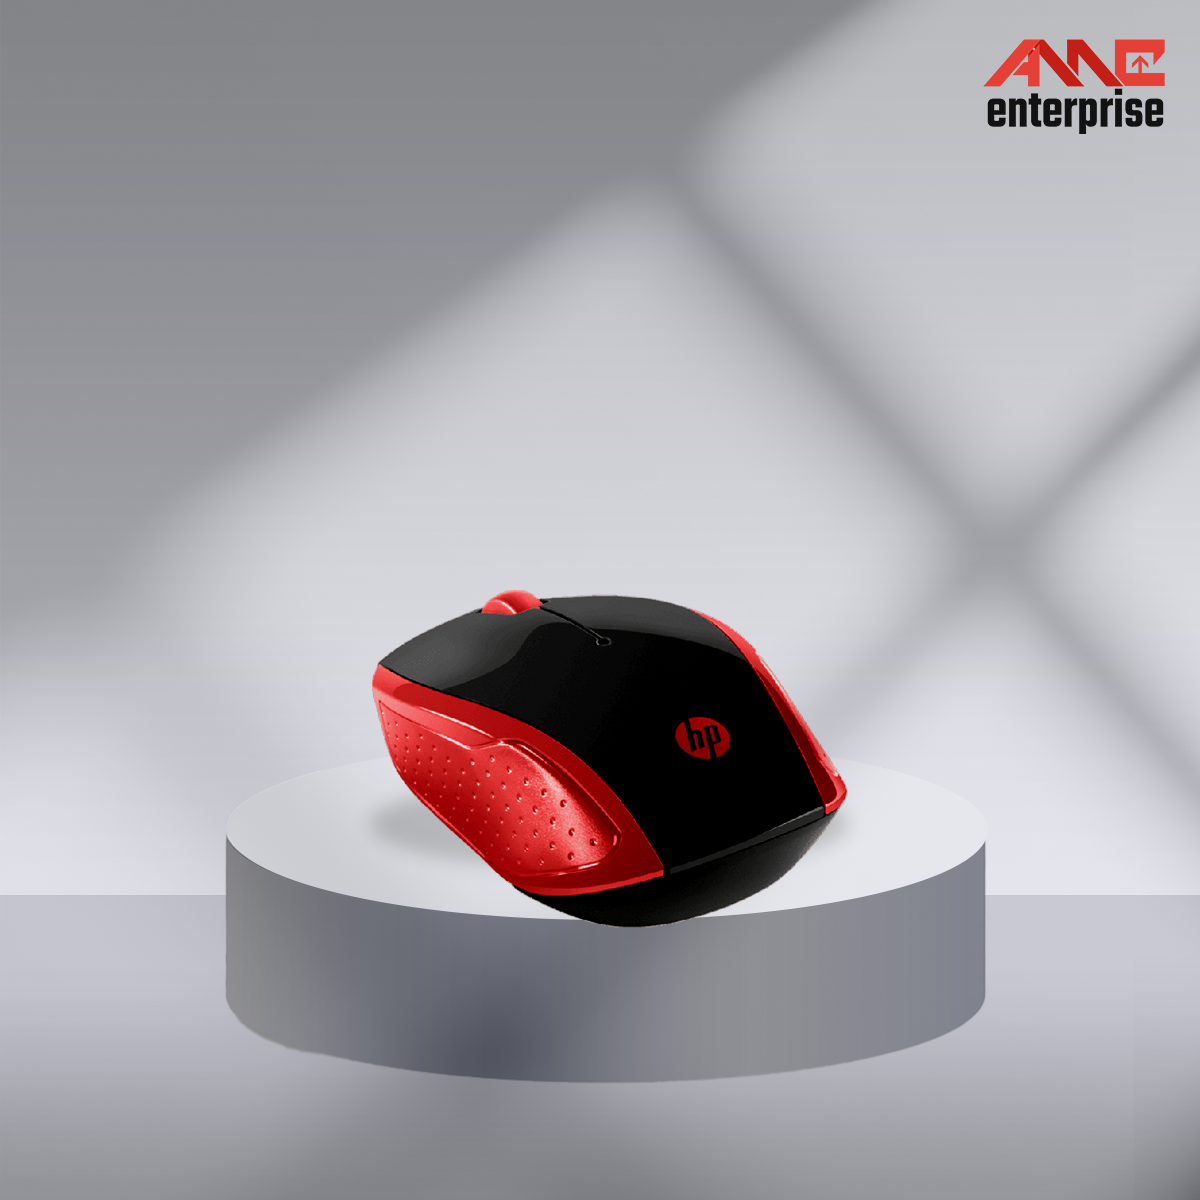 HP wireless mouse 200 (3).png